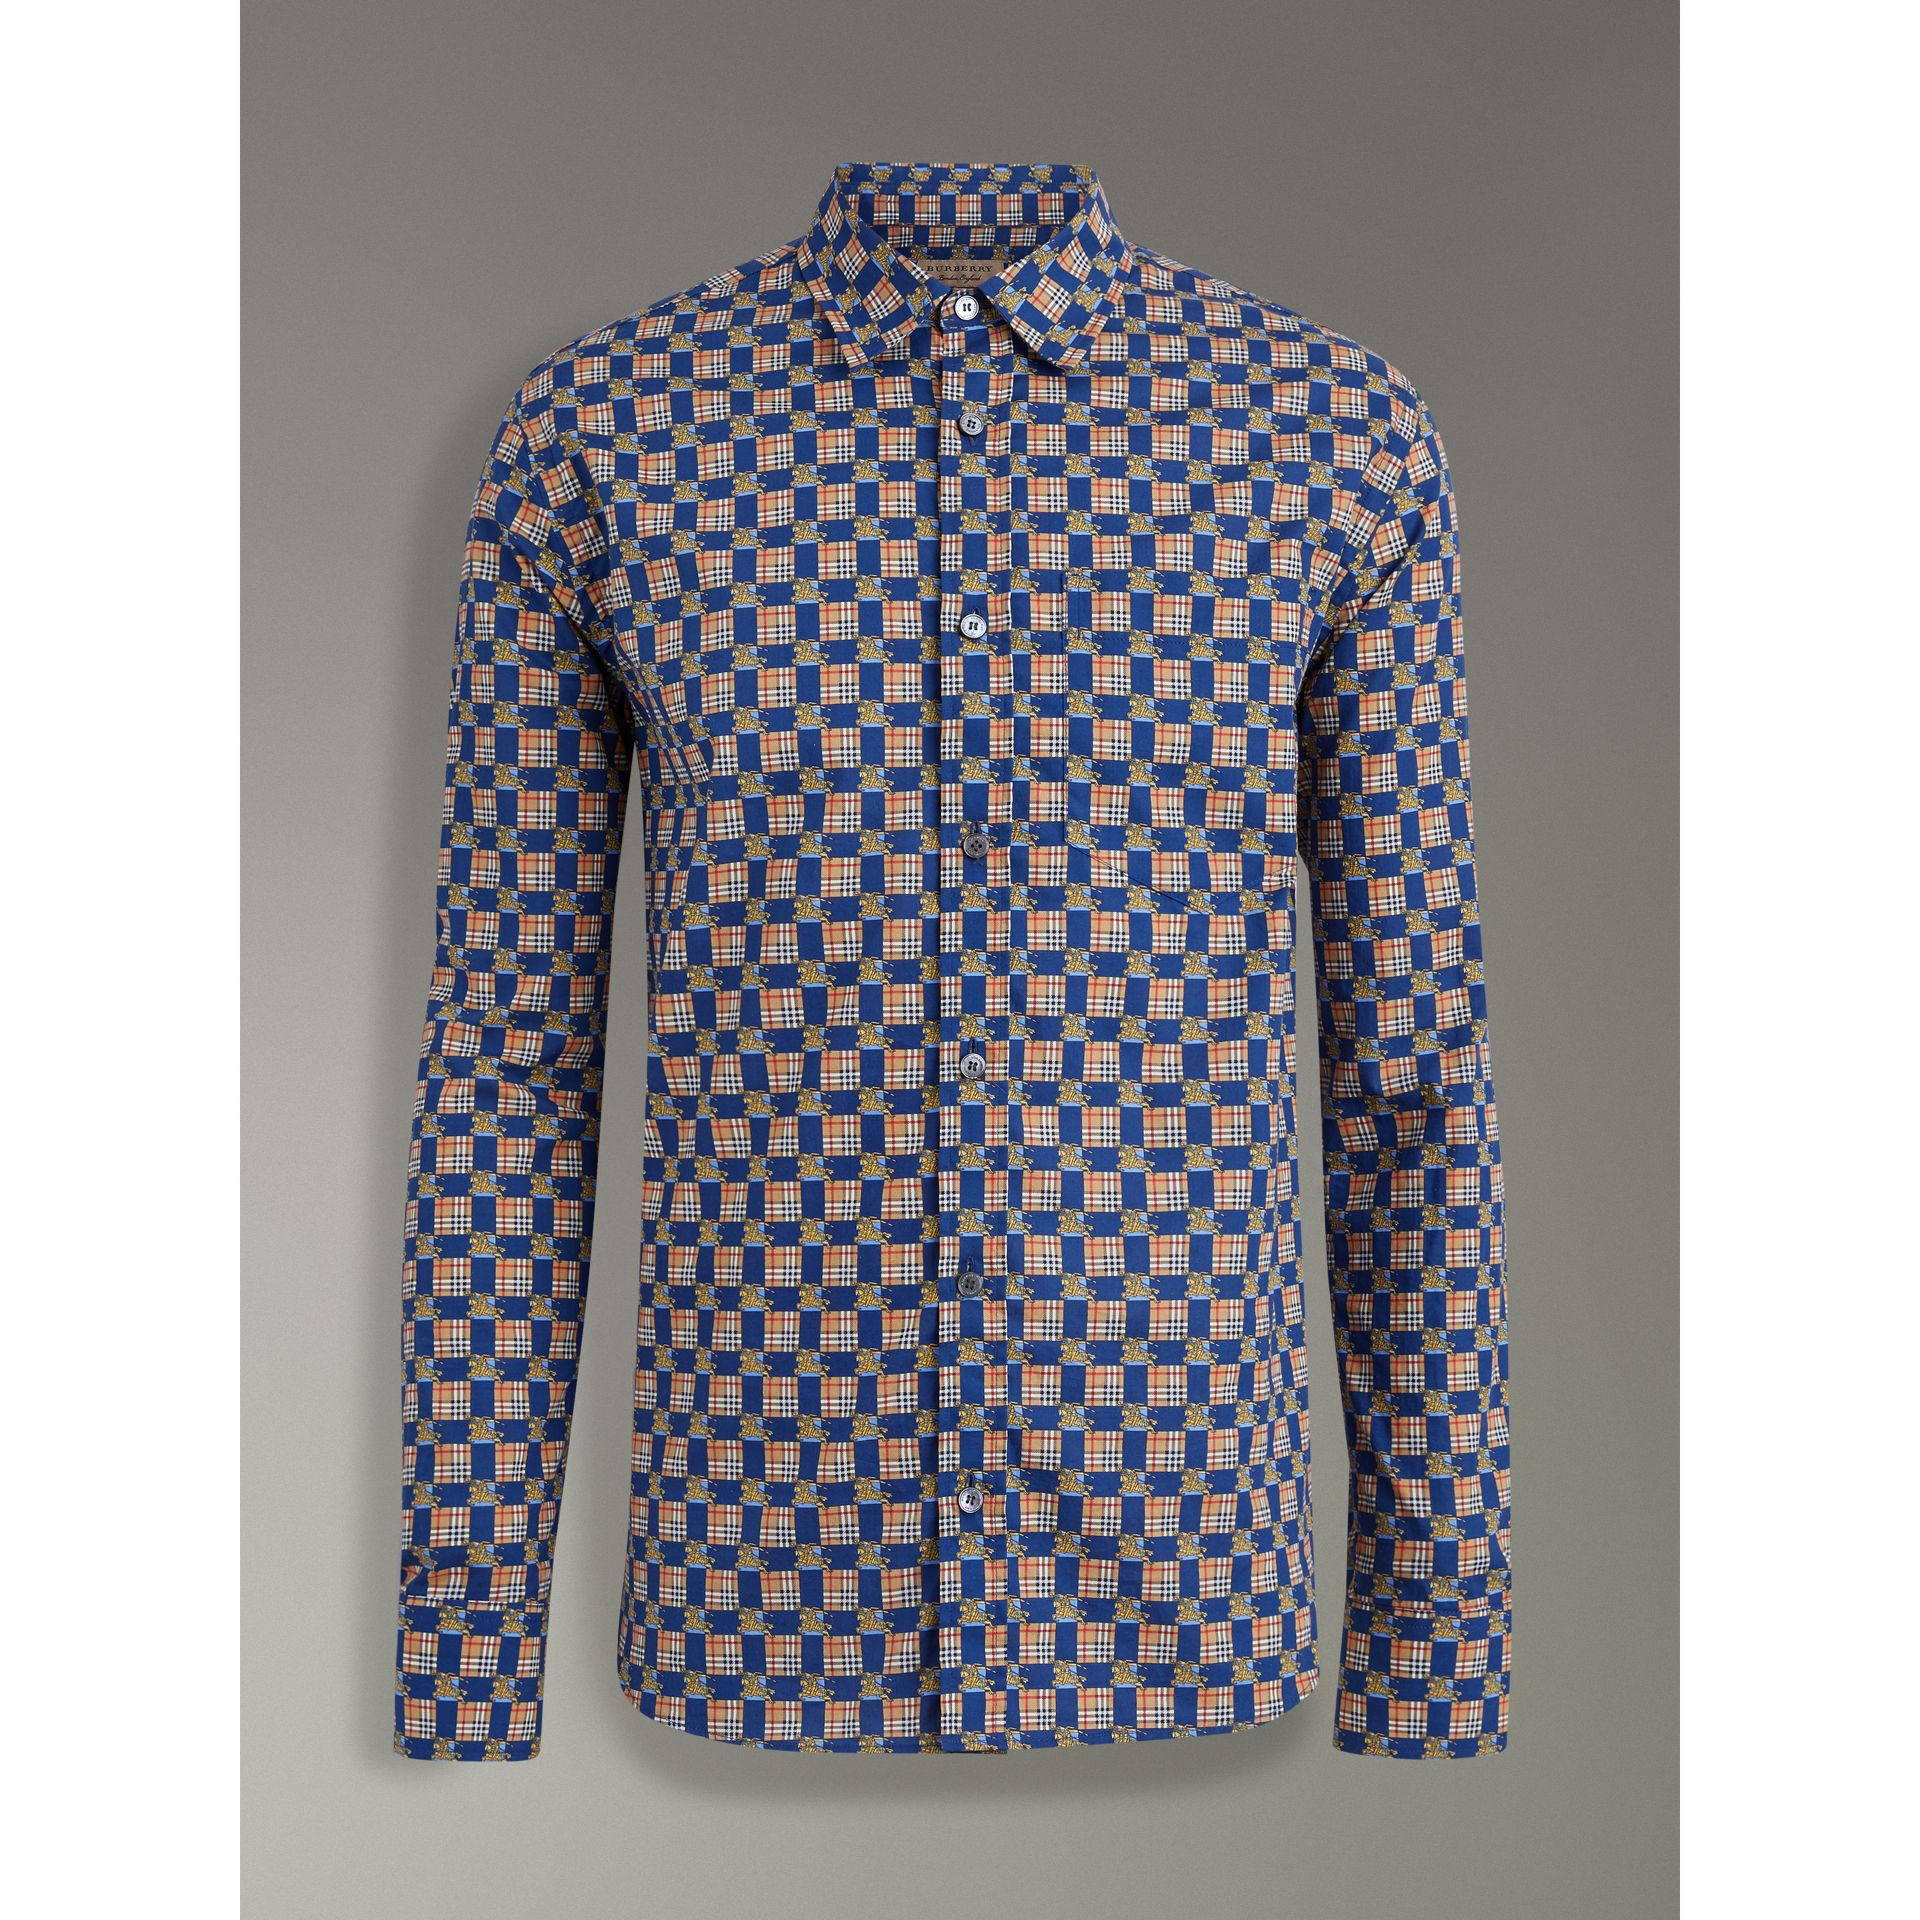 Tiled Archive Print Cotton Shirt in Navy - Men | Burberry United States - gallery image 3